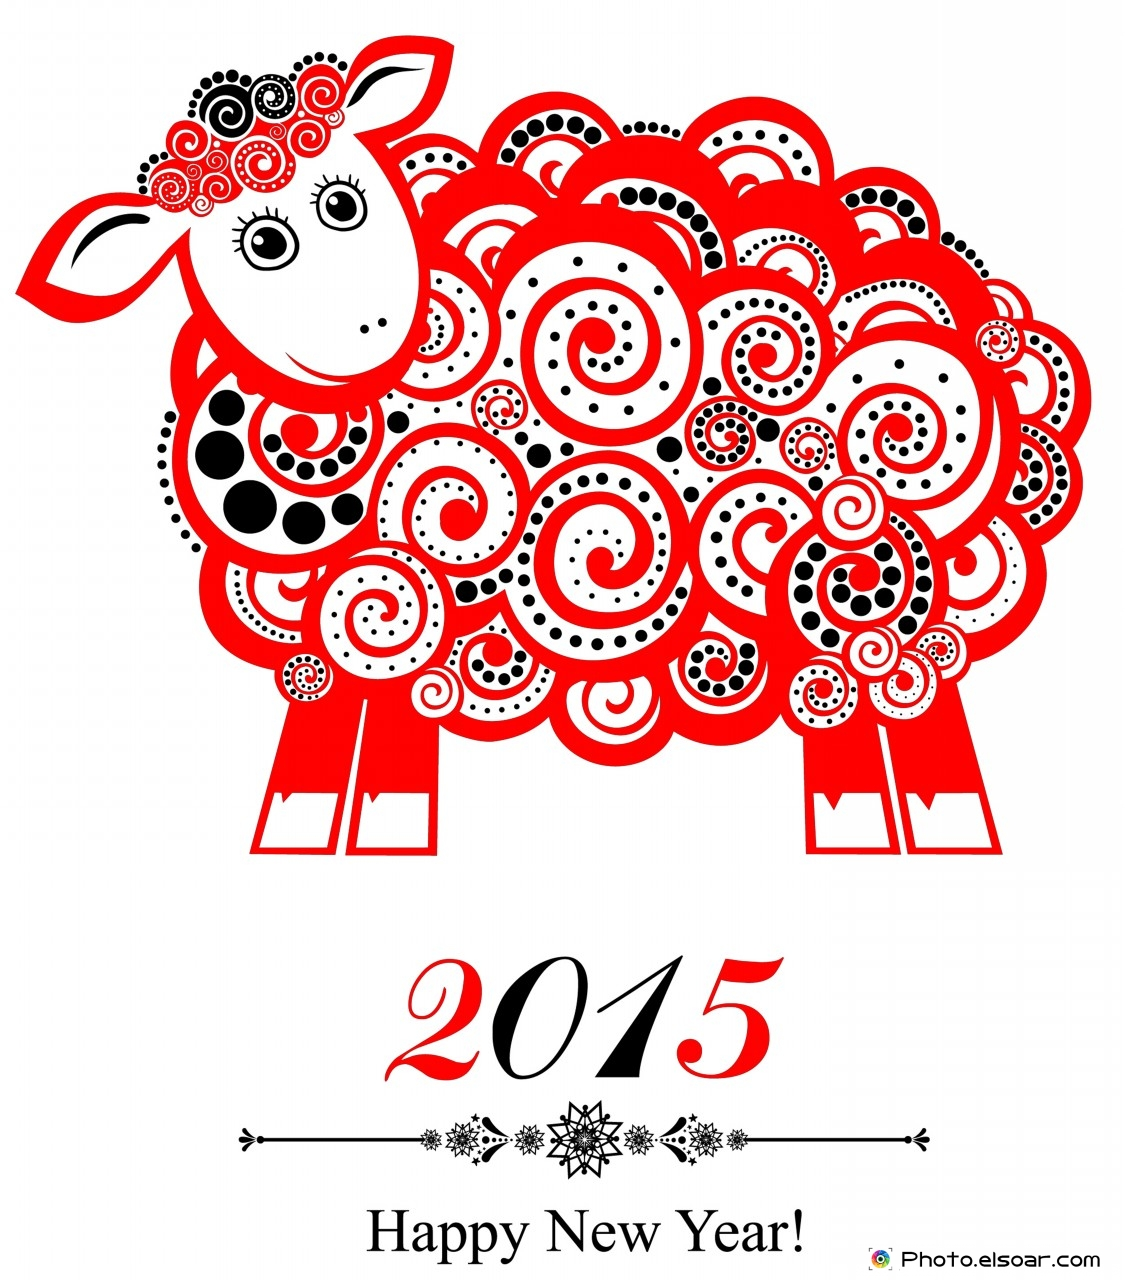 Happy New Year of the Sheep (goat!)